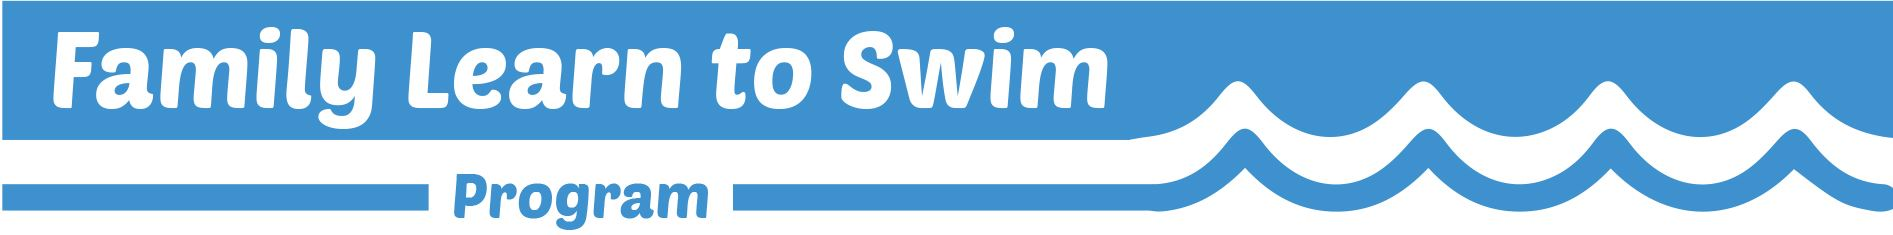 Learn to Swim Header